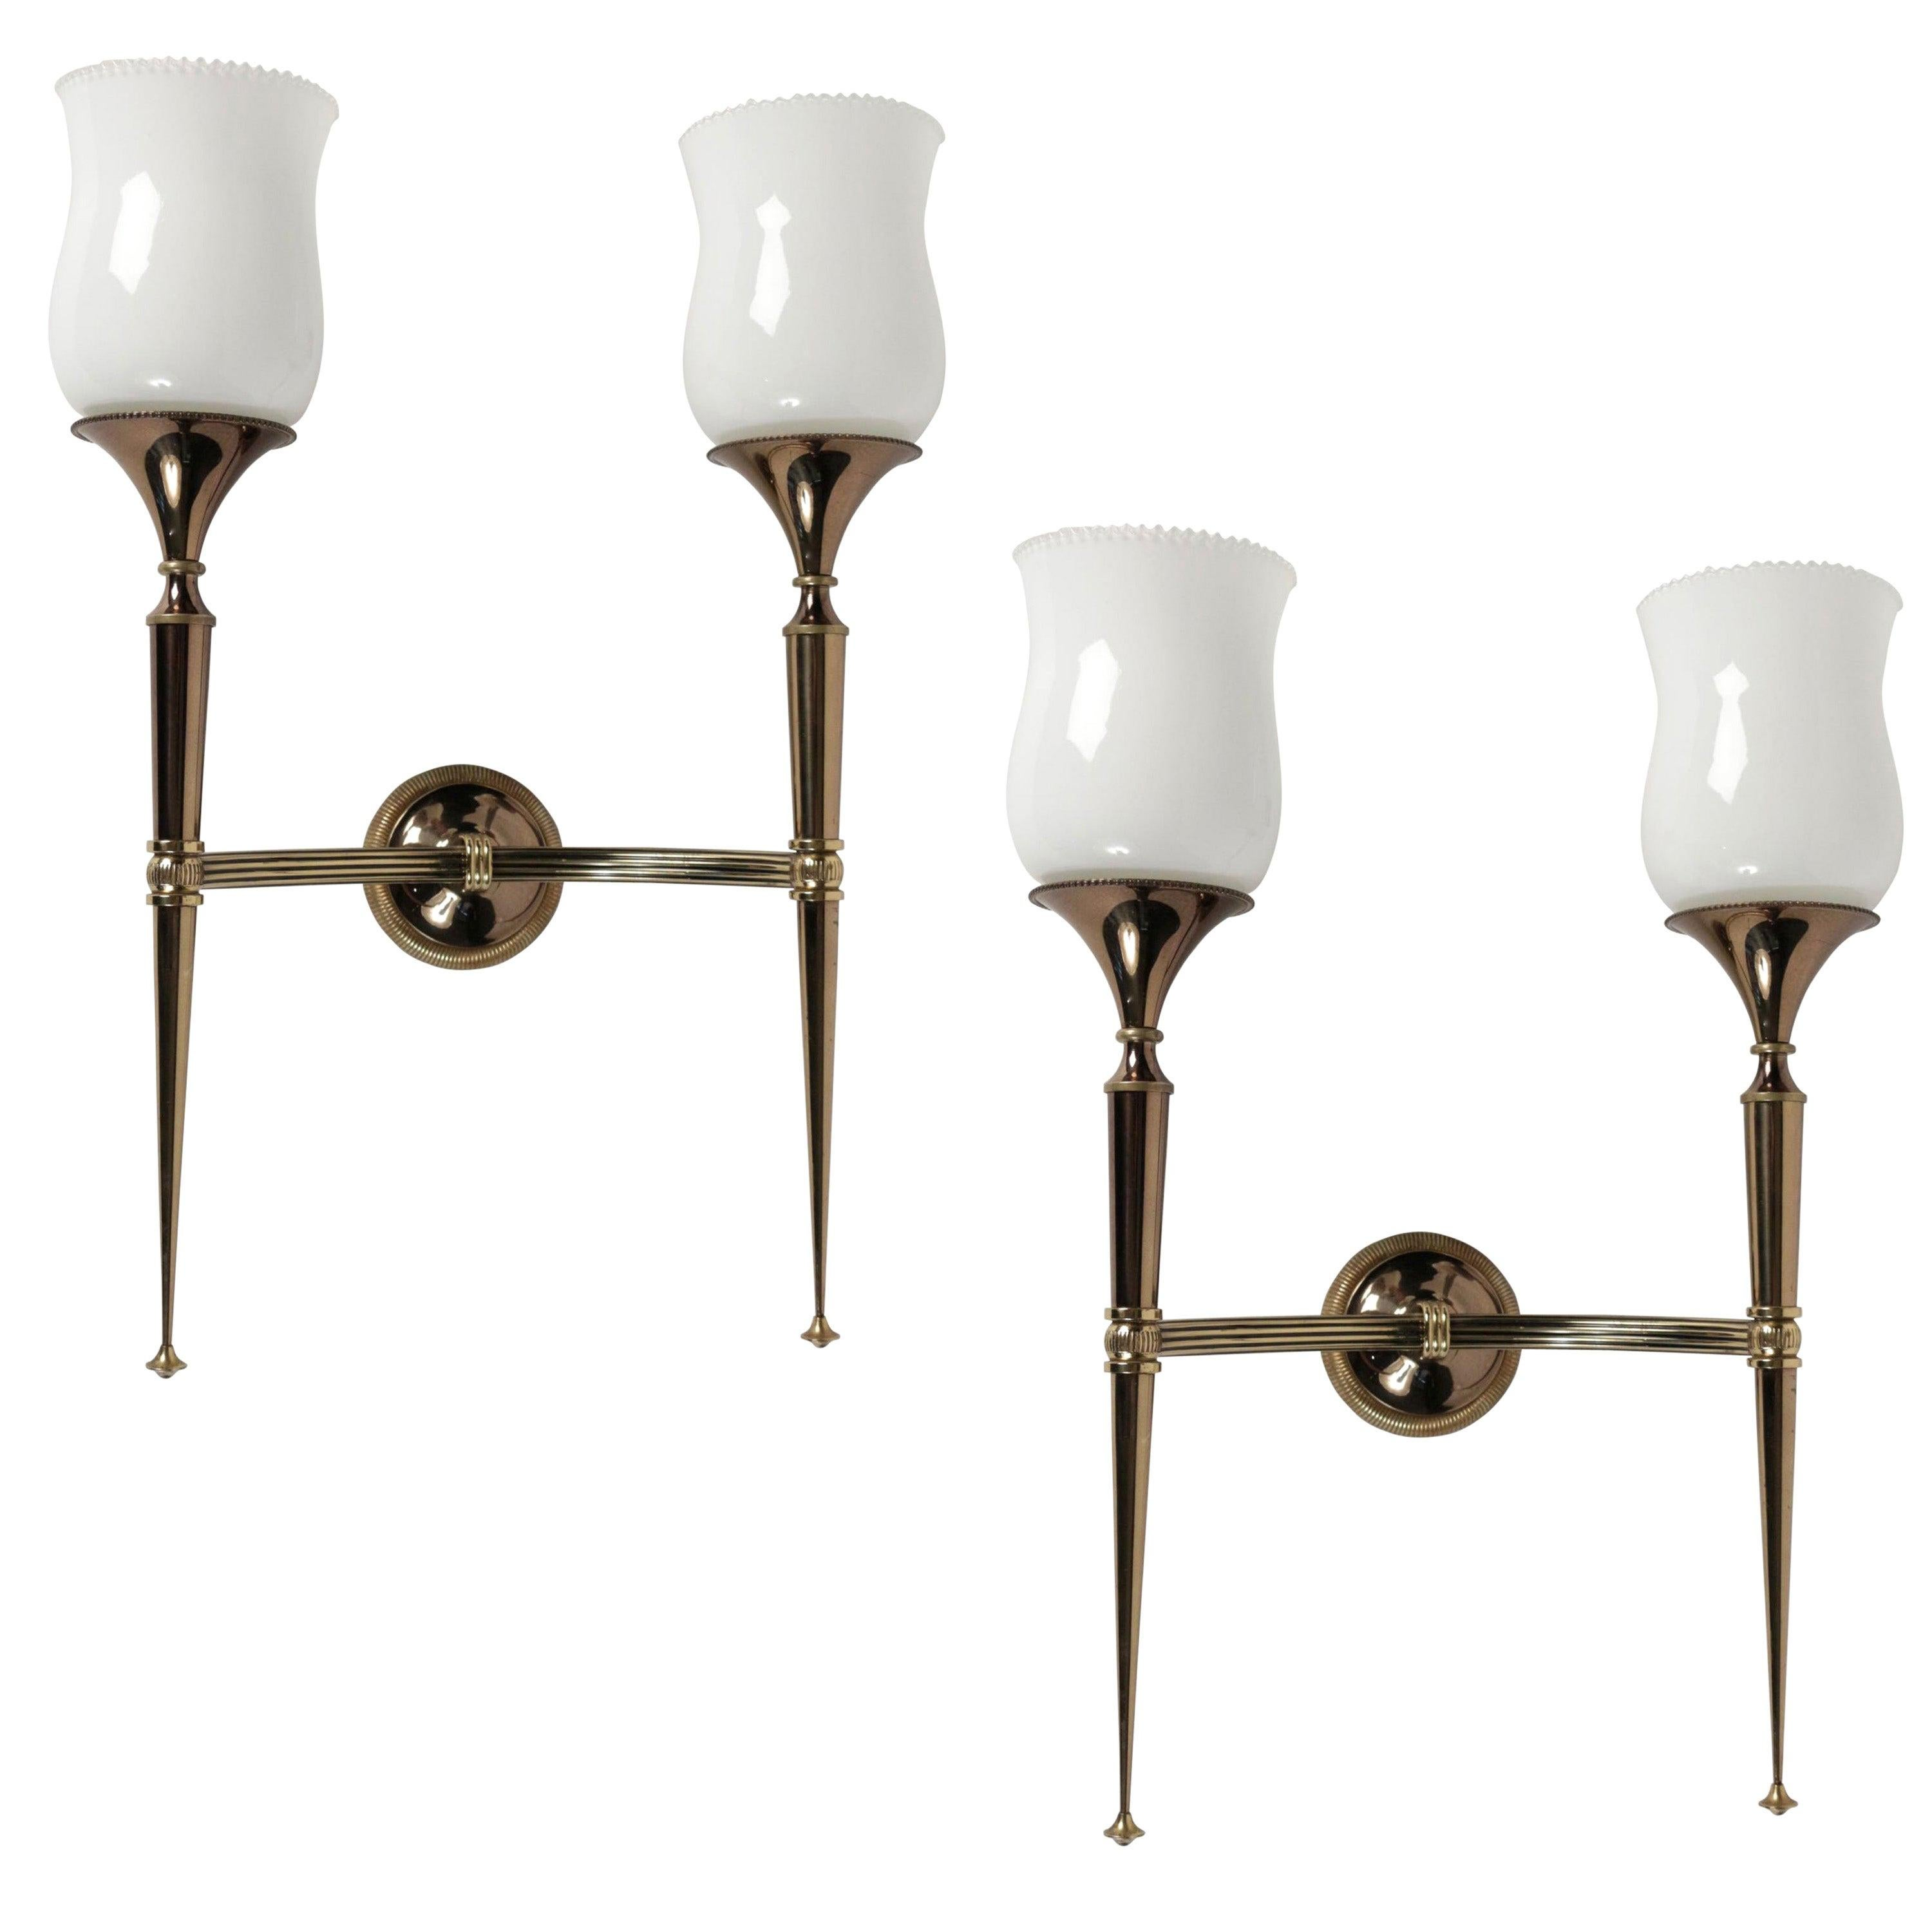 1950s Pair of Sconces by Maison Arlus